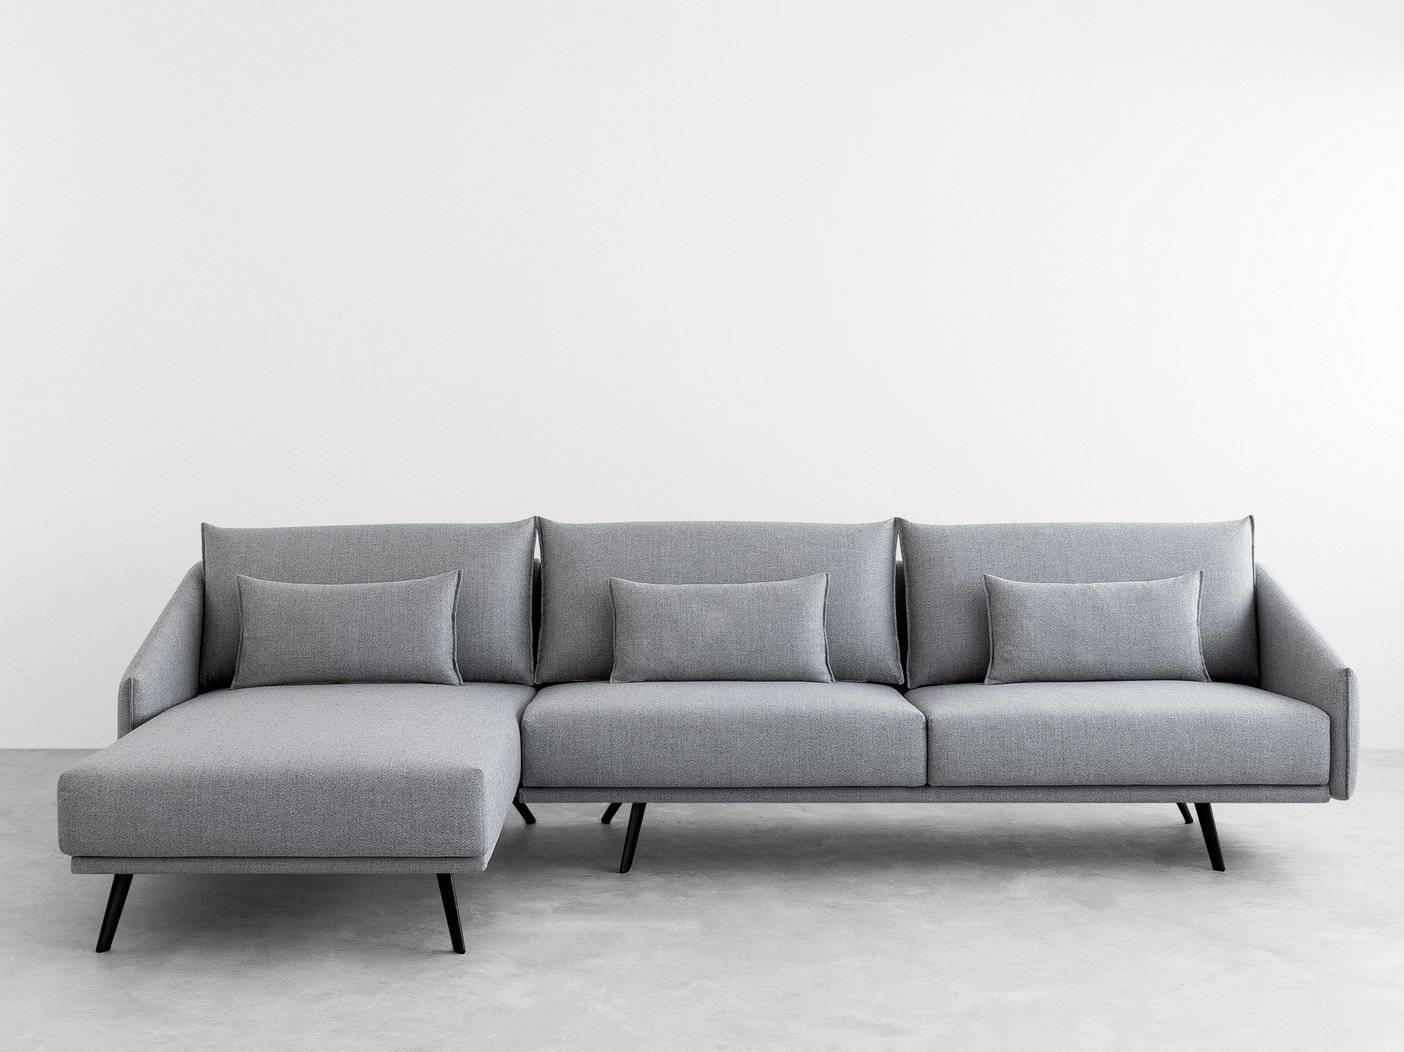 Costura sofa with chaise longue costura collection by stua for Sofa 1 plaza chaise longue